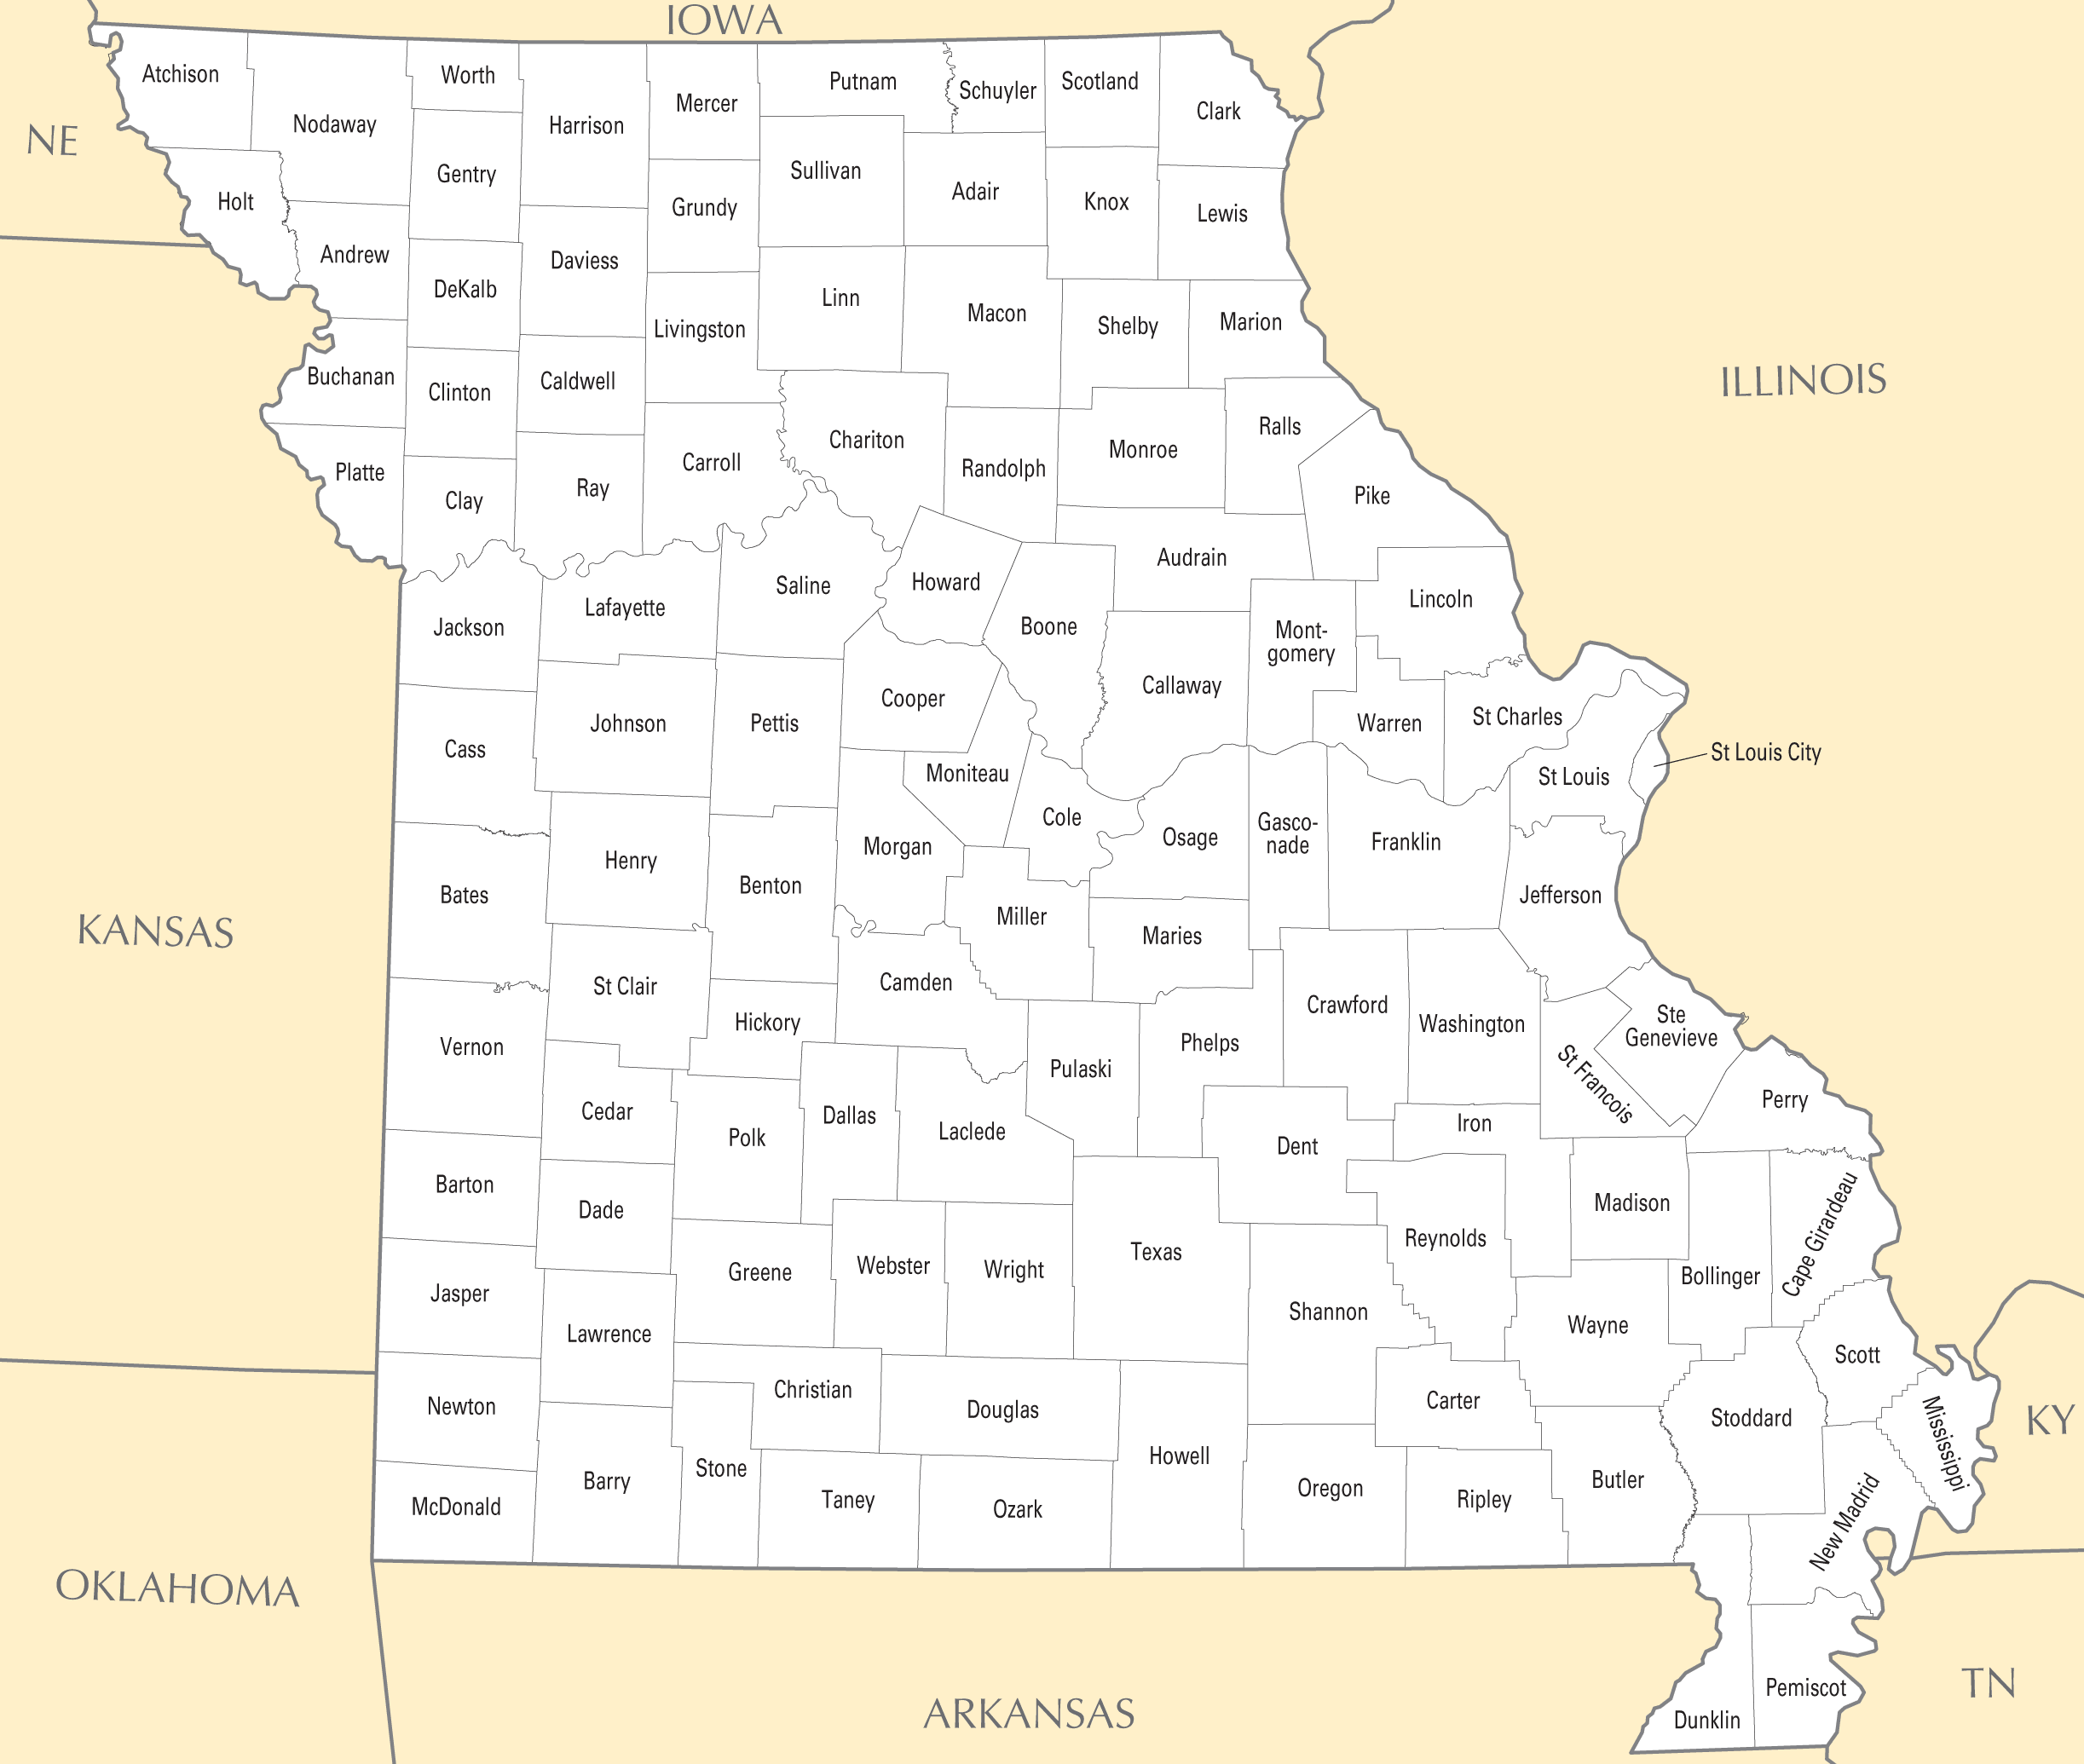 Missouri County Map Mapsofnet - Mo county map